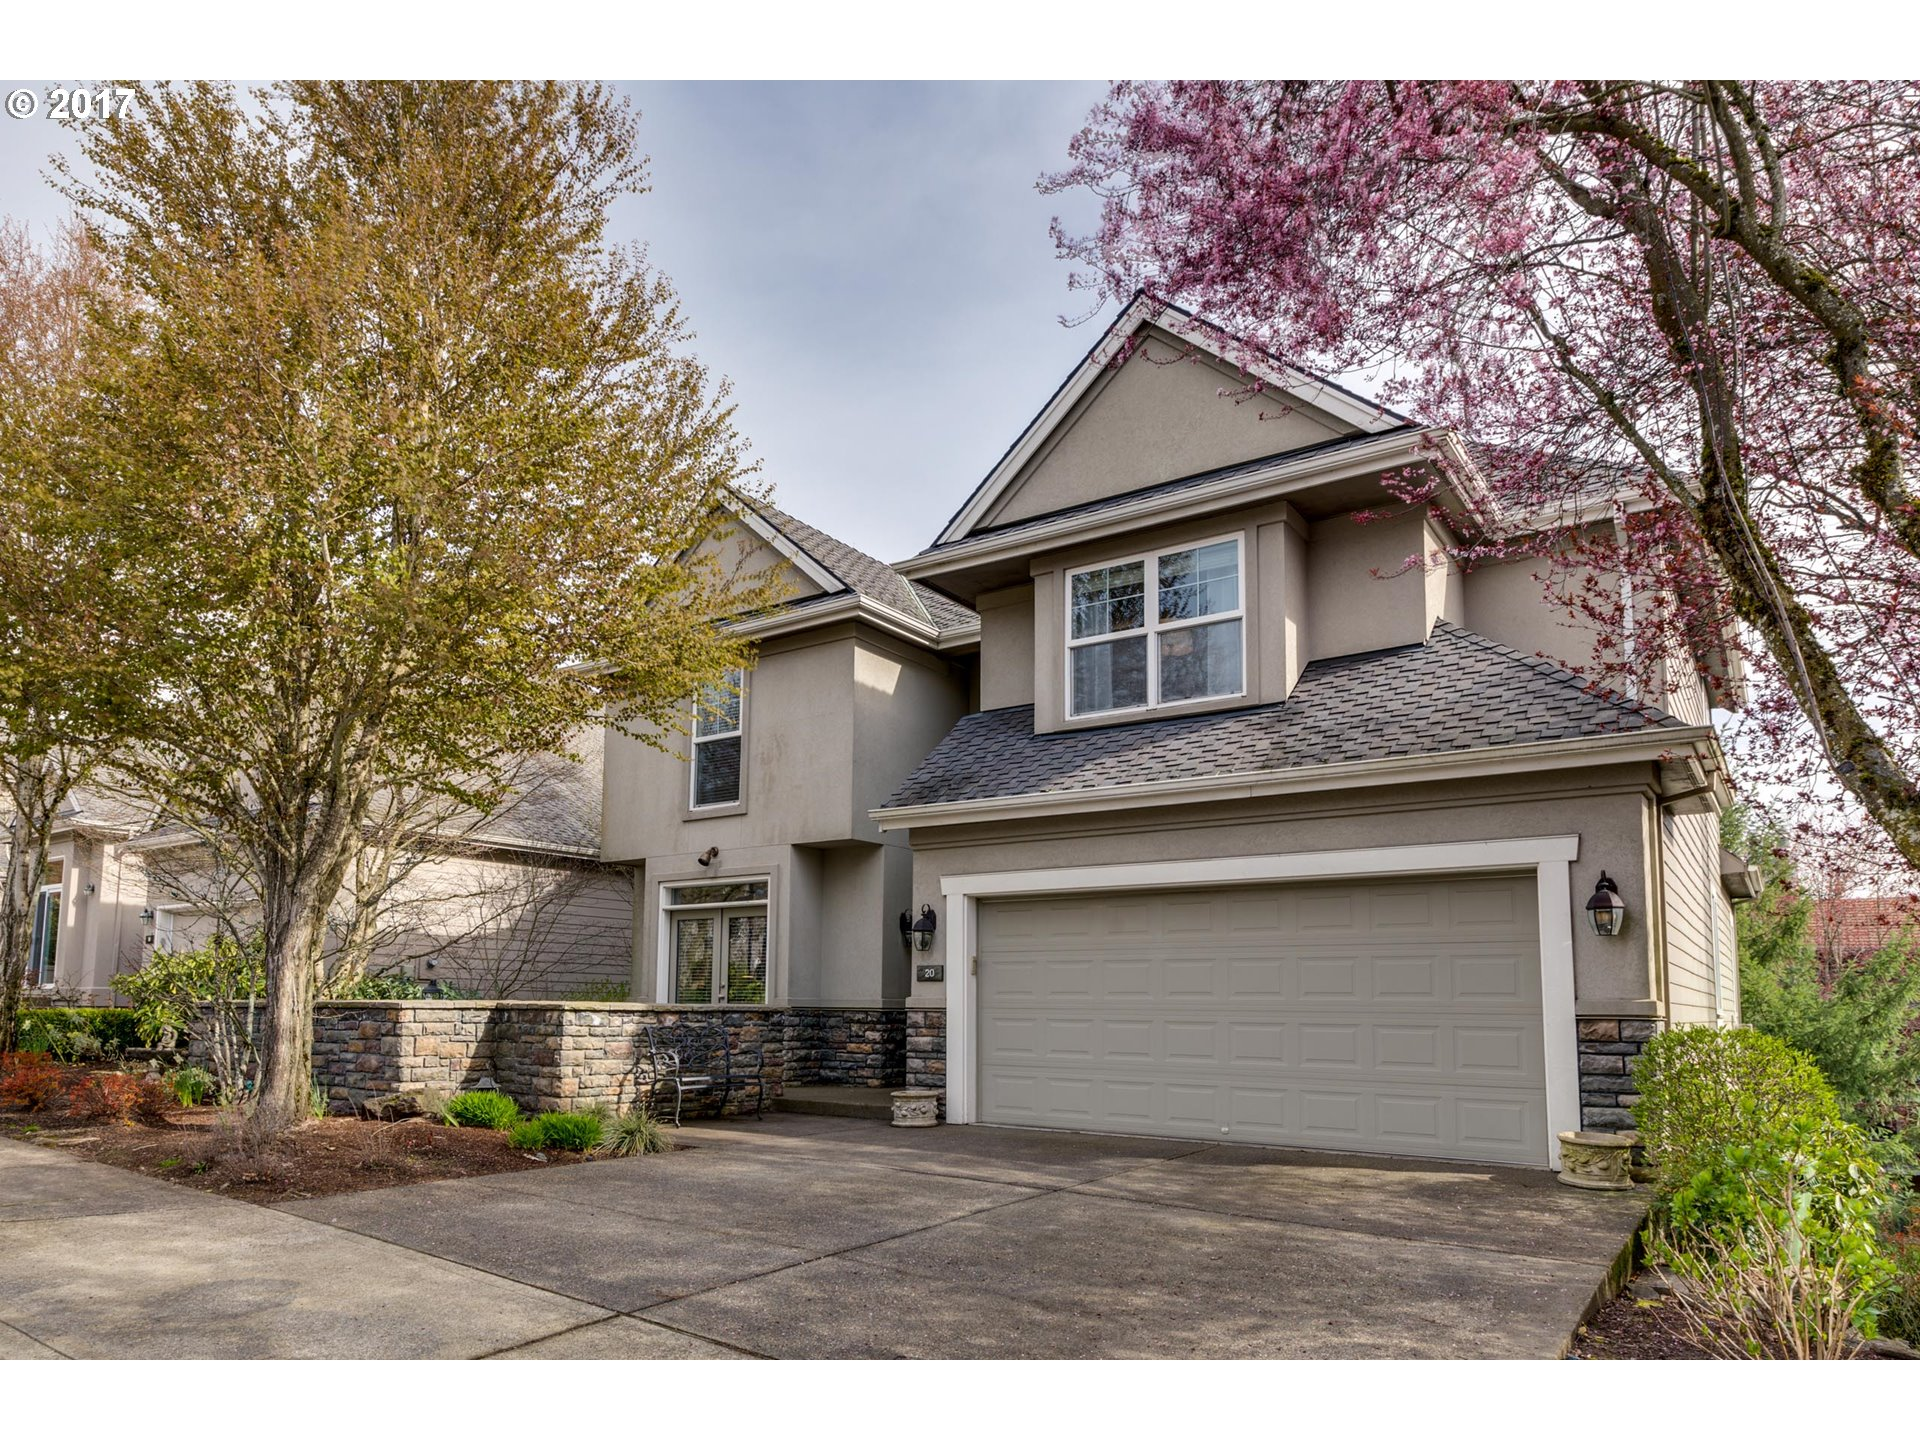 20 MORNINGVIEW CIR, Lake Oswego, OR 97035